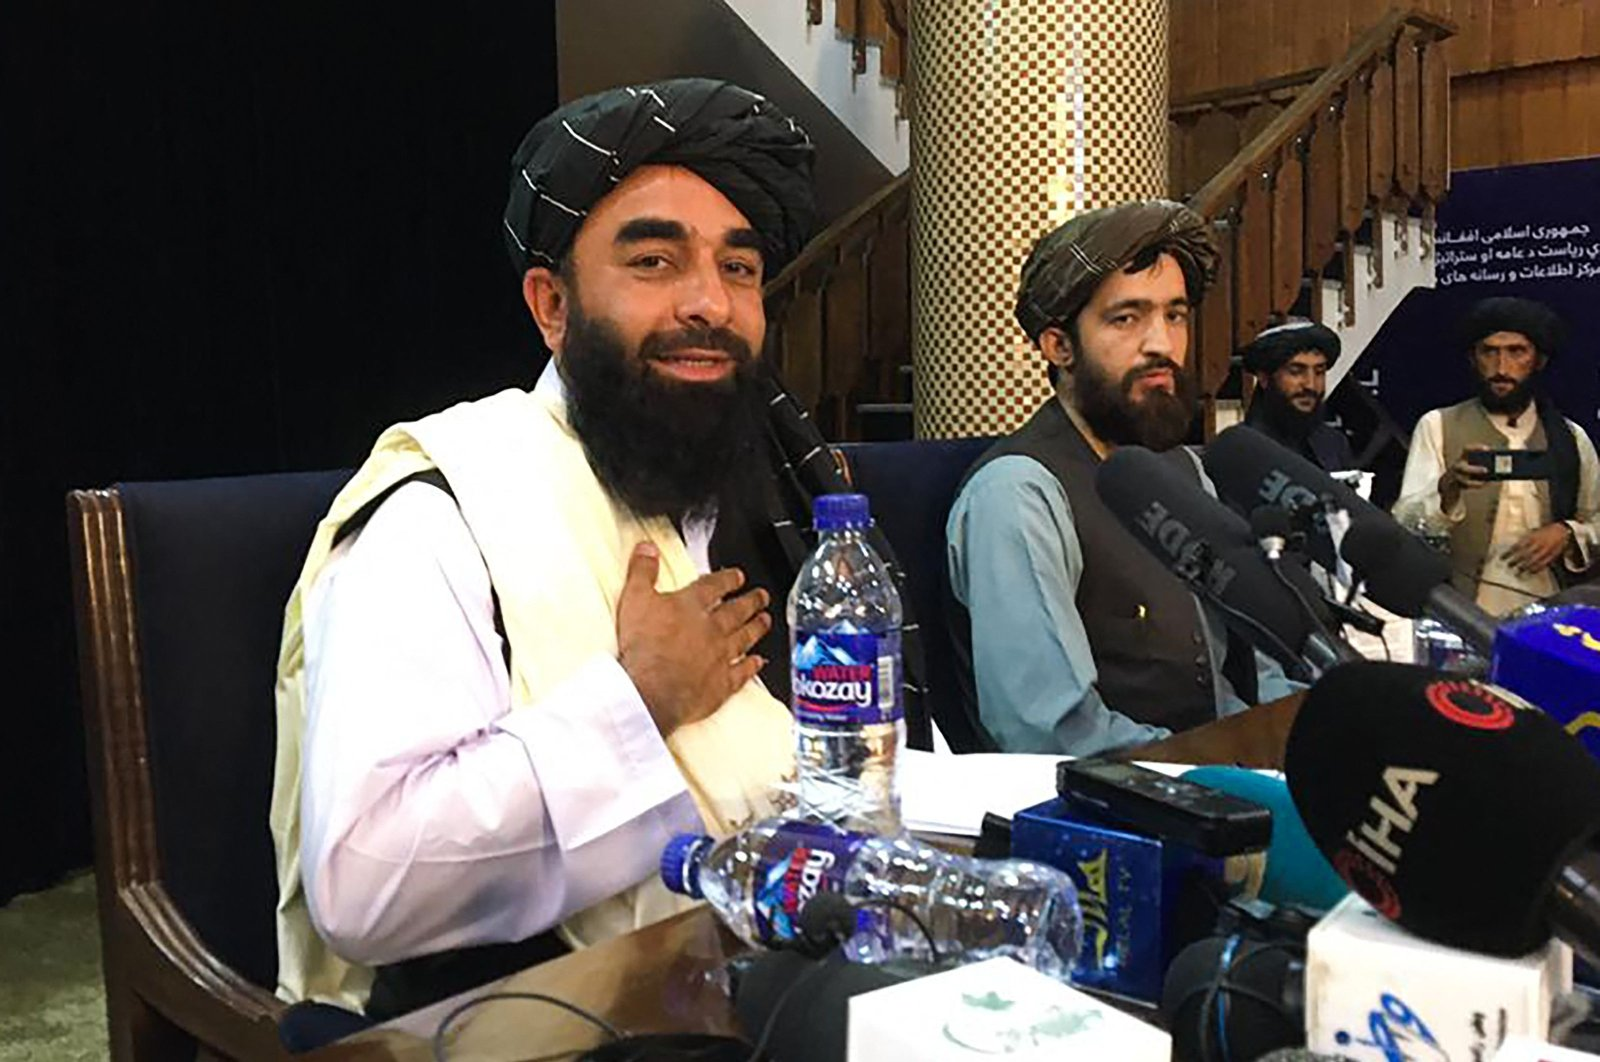 Taliban spokesperson Zabihullah Mujahid (L) attends the first press conference following their stunning takeover of Afghanistan in Kabul, Afghanistan, on Aug. 17, 2021. (AFP Photo)